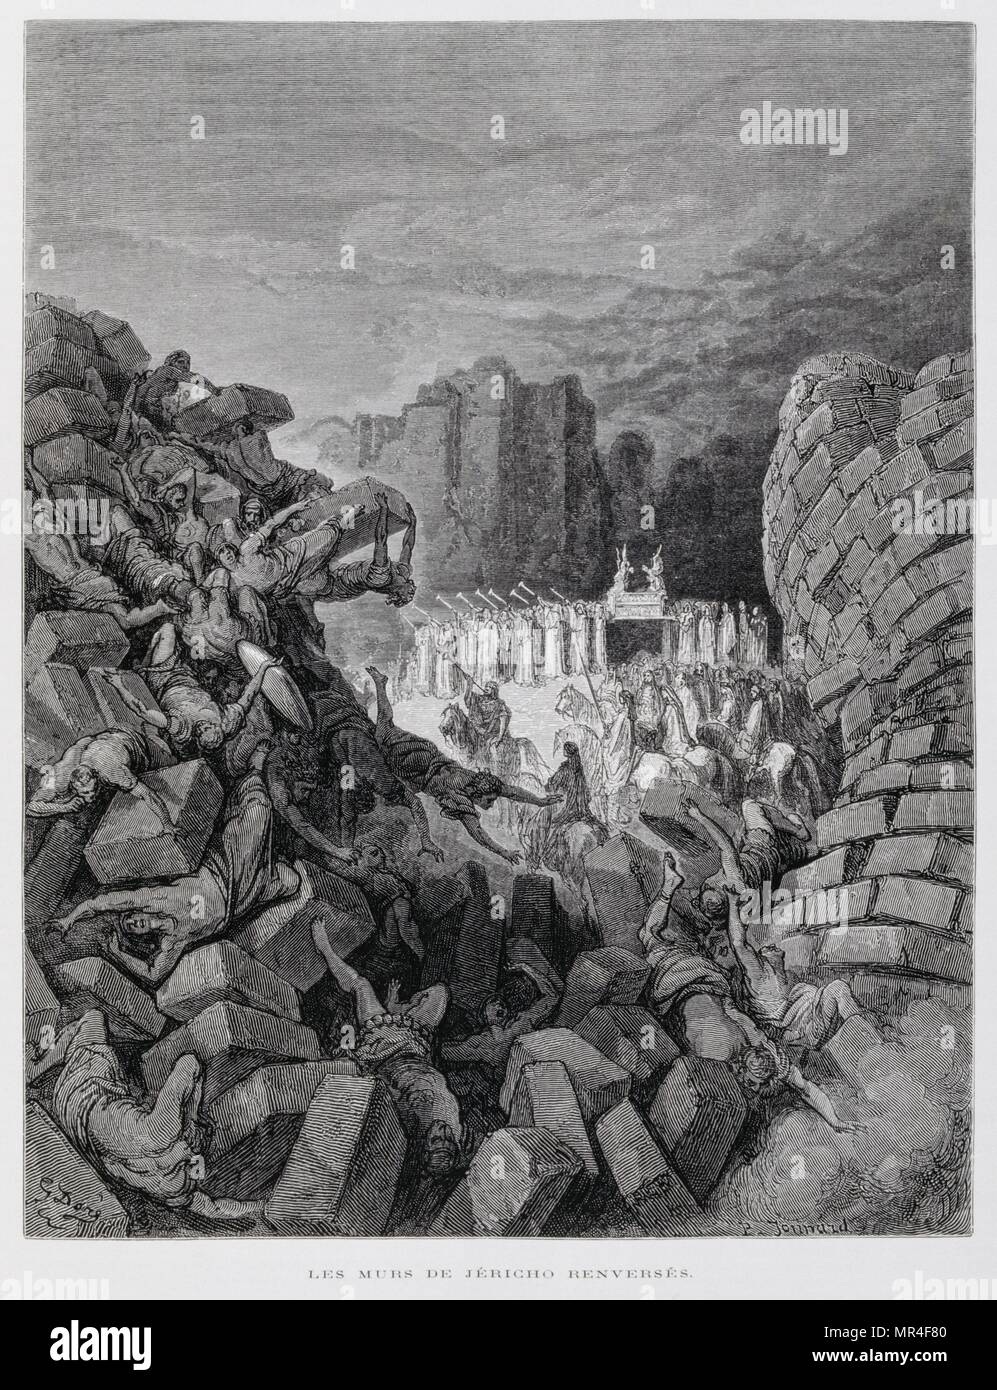 The Walls of Jericho Fall Down (Josh. 5:16, 6:1-10,13-19), Illustration from the Dore Bible 1866. In 1866, the French artist and illustrator Gustave Dore (1832–1883), published a series of 241 wood engravings for a new deluxe edition of the 1843 French translation of the Vulgate Bible, popularly known as the Bible de Tours. This new edition was known as La Grande Bible de Tours and its illustrations were immensely successful - Stock Image